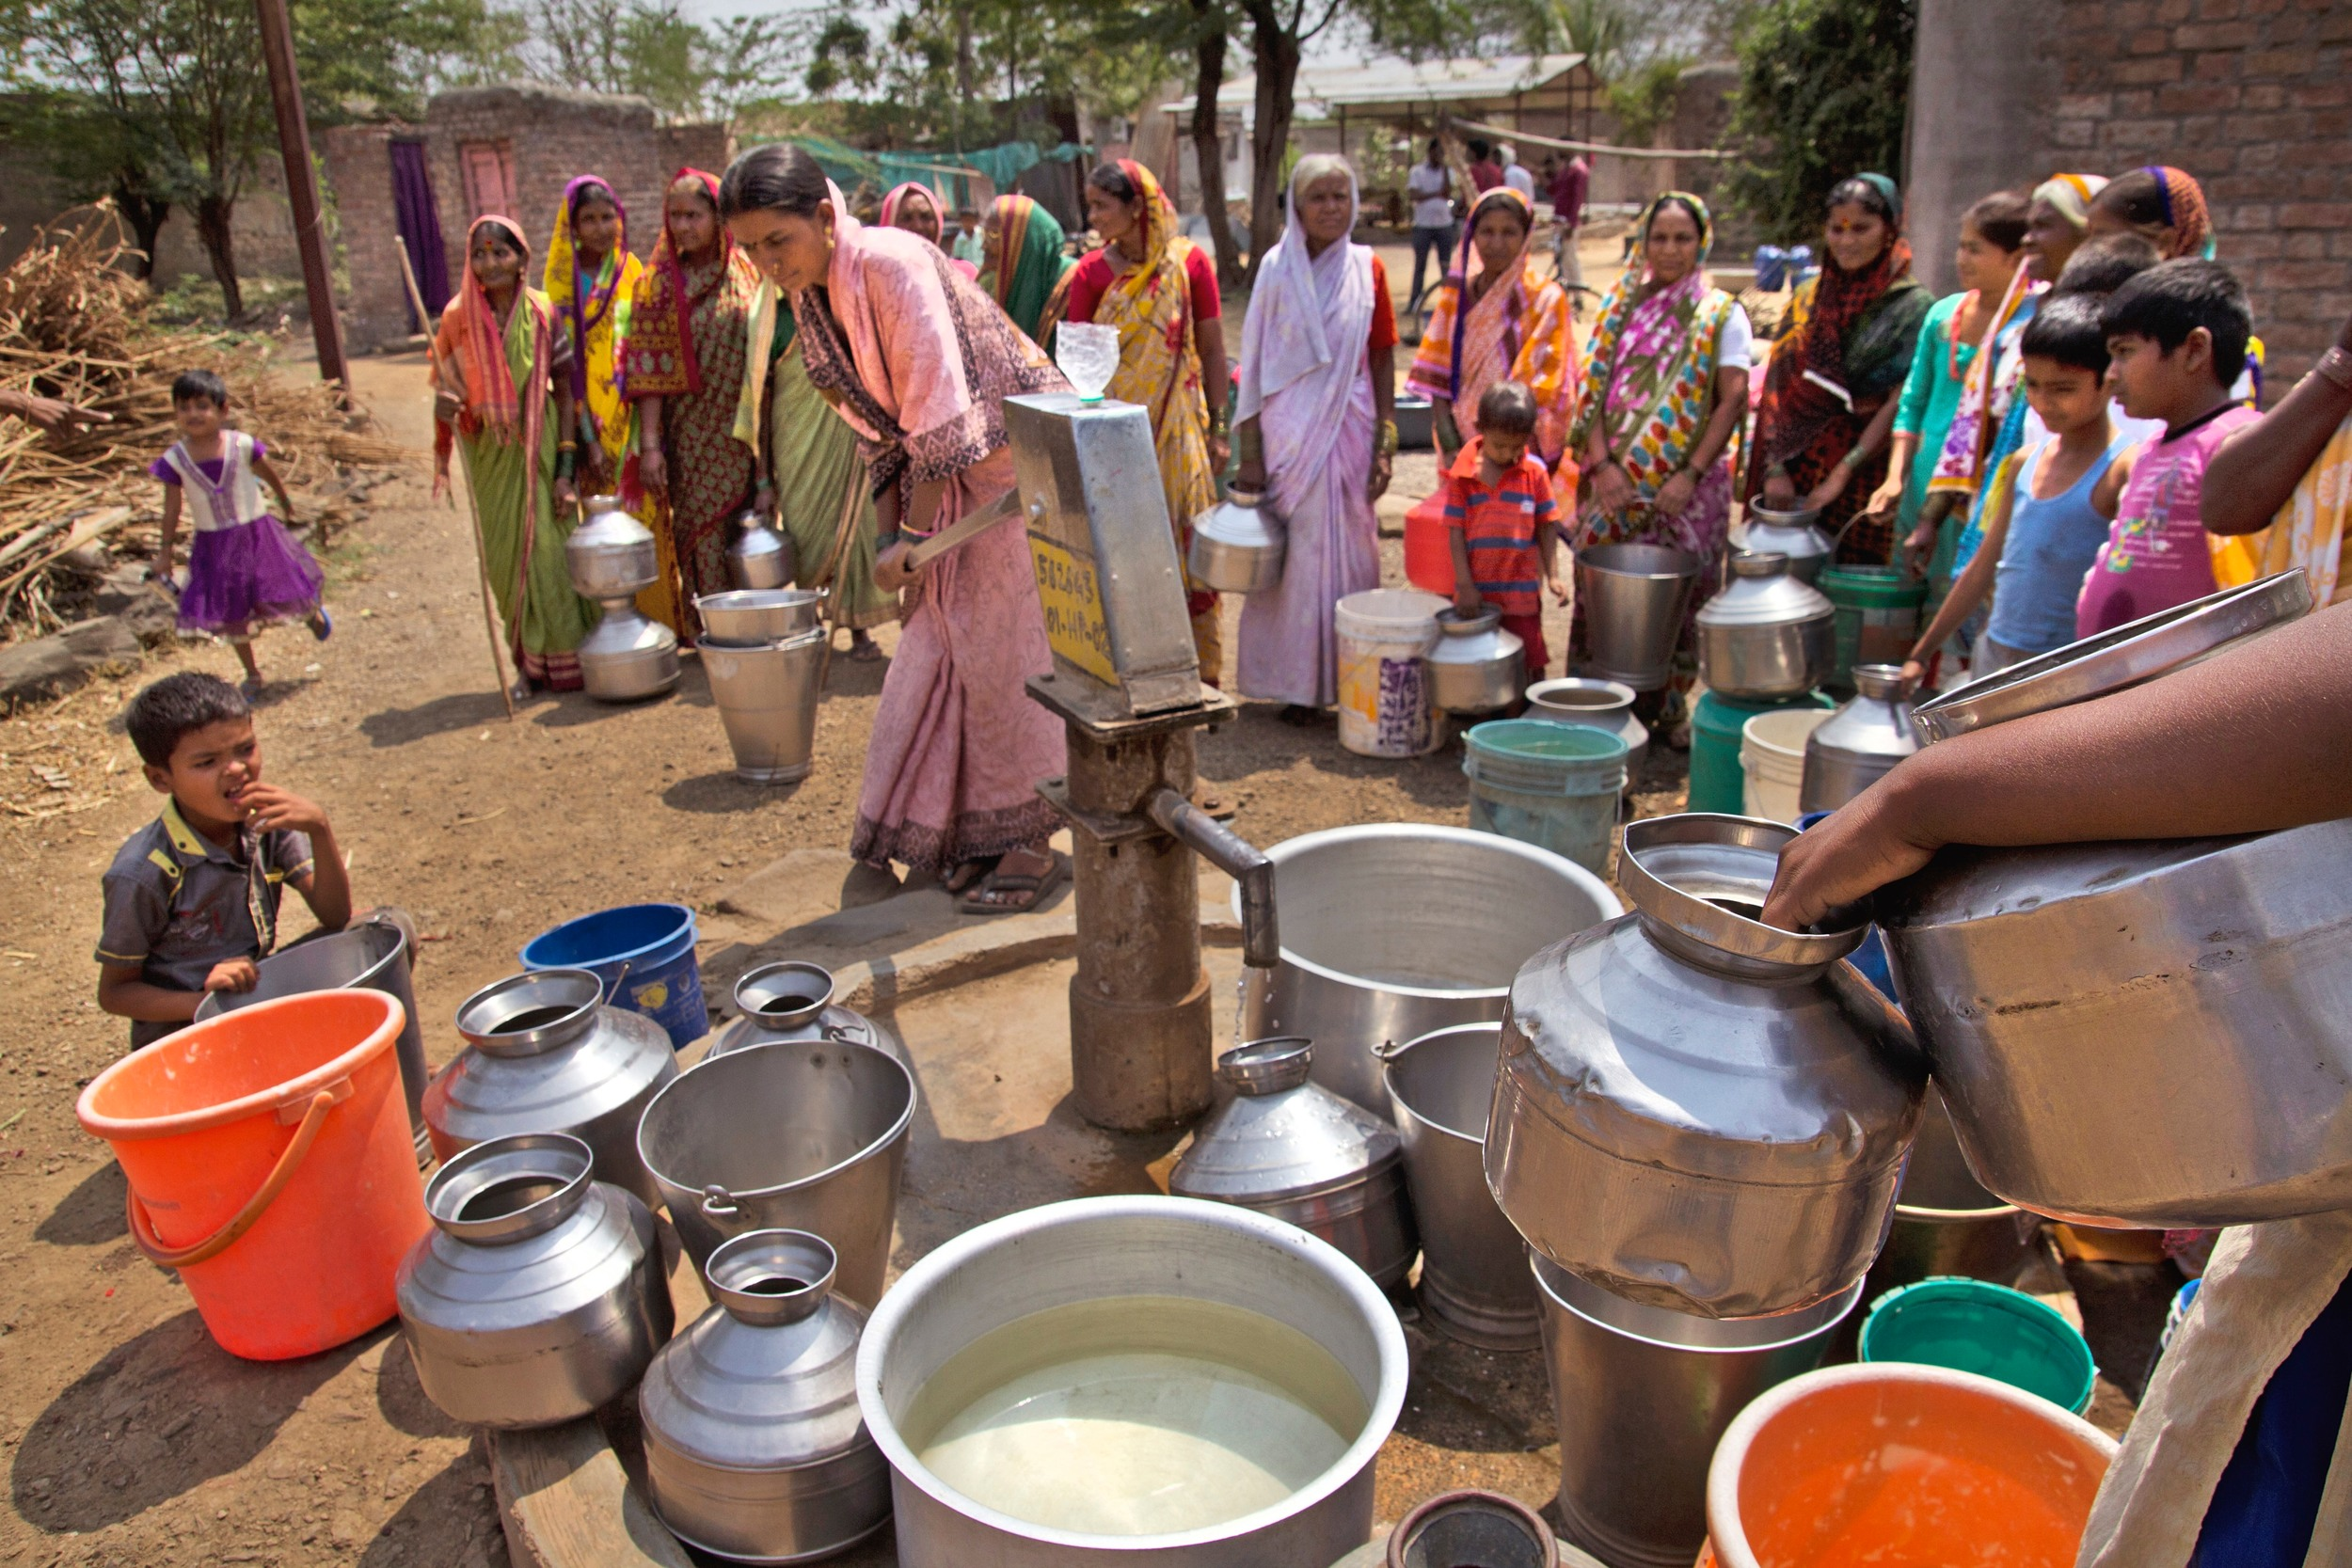 Around 17 Indian village women in colourful saris gather around a single tap in the centre of the frame. There are around 30 containers of water on the ground near the tap and in front of the women, made from metal, plastic and in different shapes and colours and sizes. There are two little children watching closely from the left hand side.